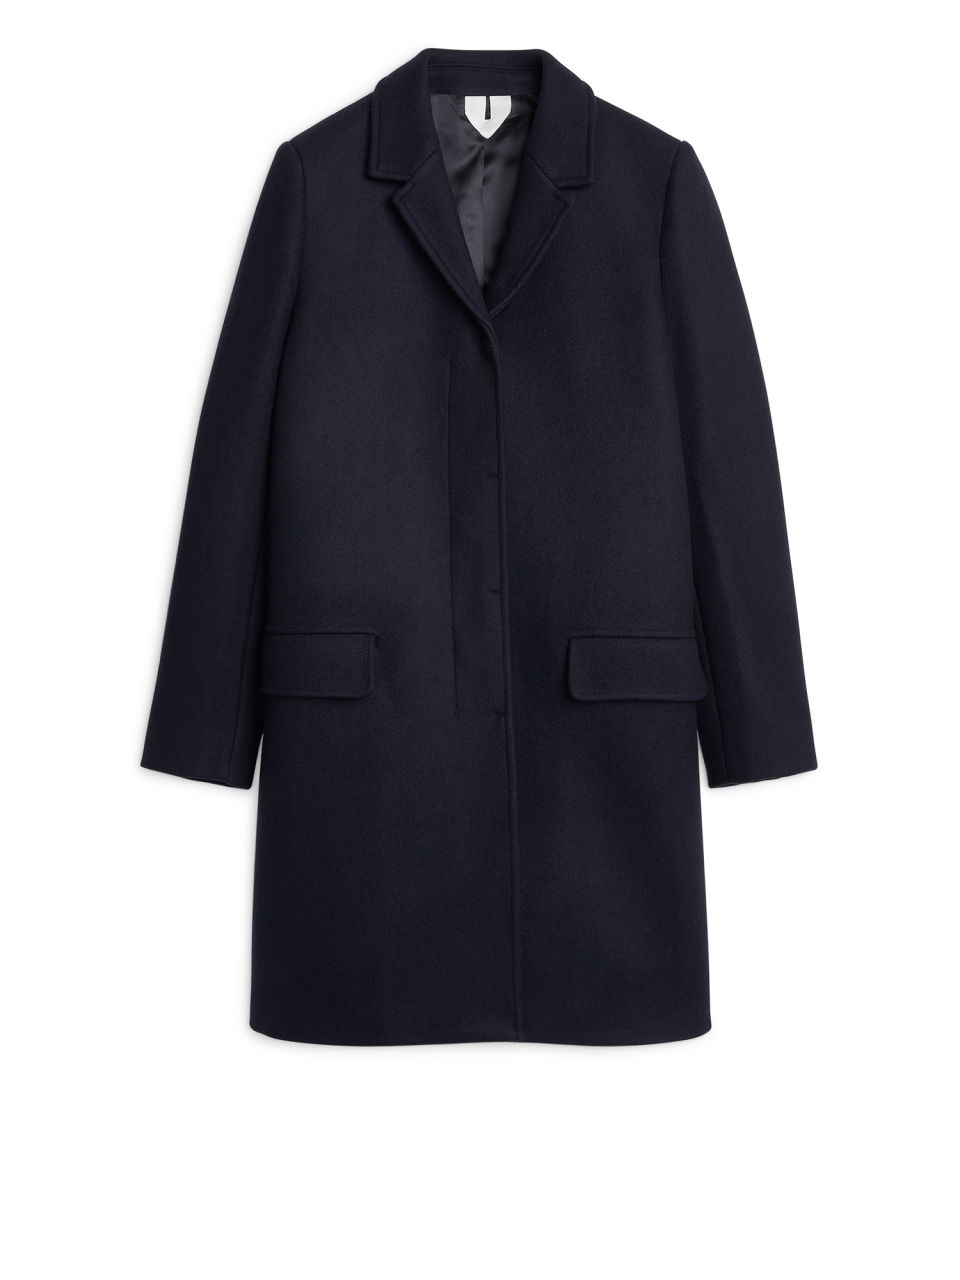 Heavy Wool Coat - Dark Blue - Jackets & Coats - ARKET